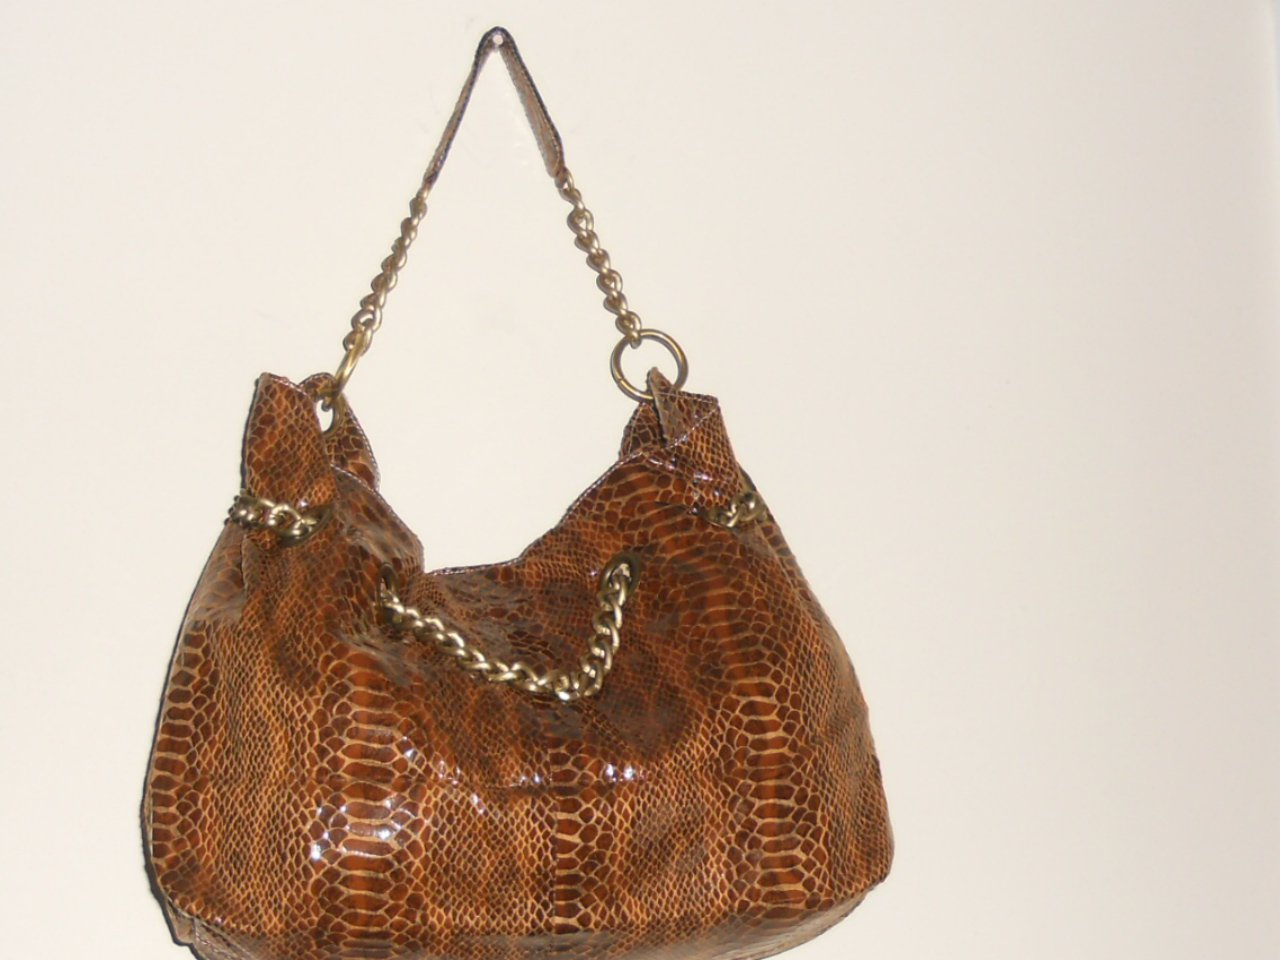 BROWN FAUX SNAKE SKIN DESIGNER INSPIRED HANDBAG